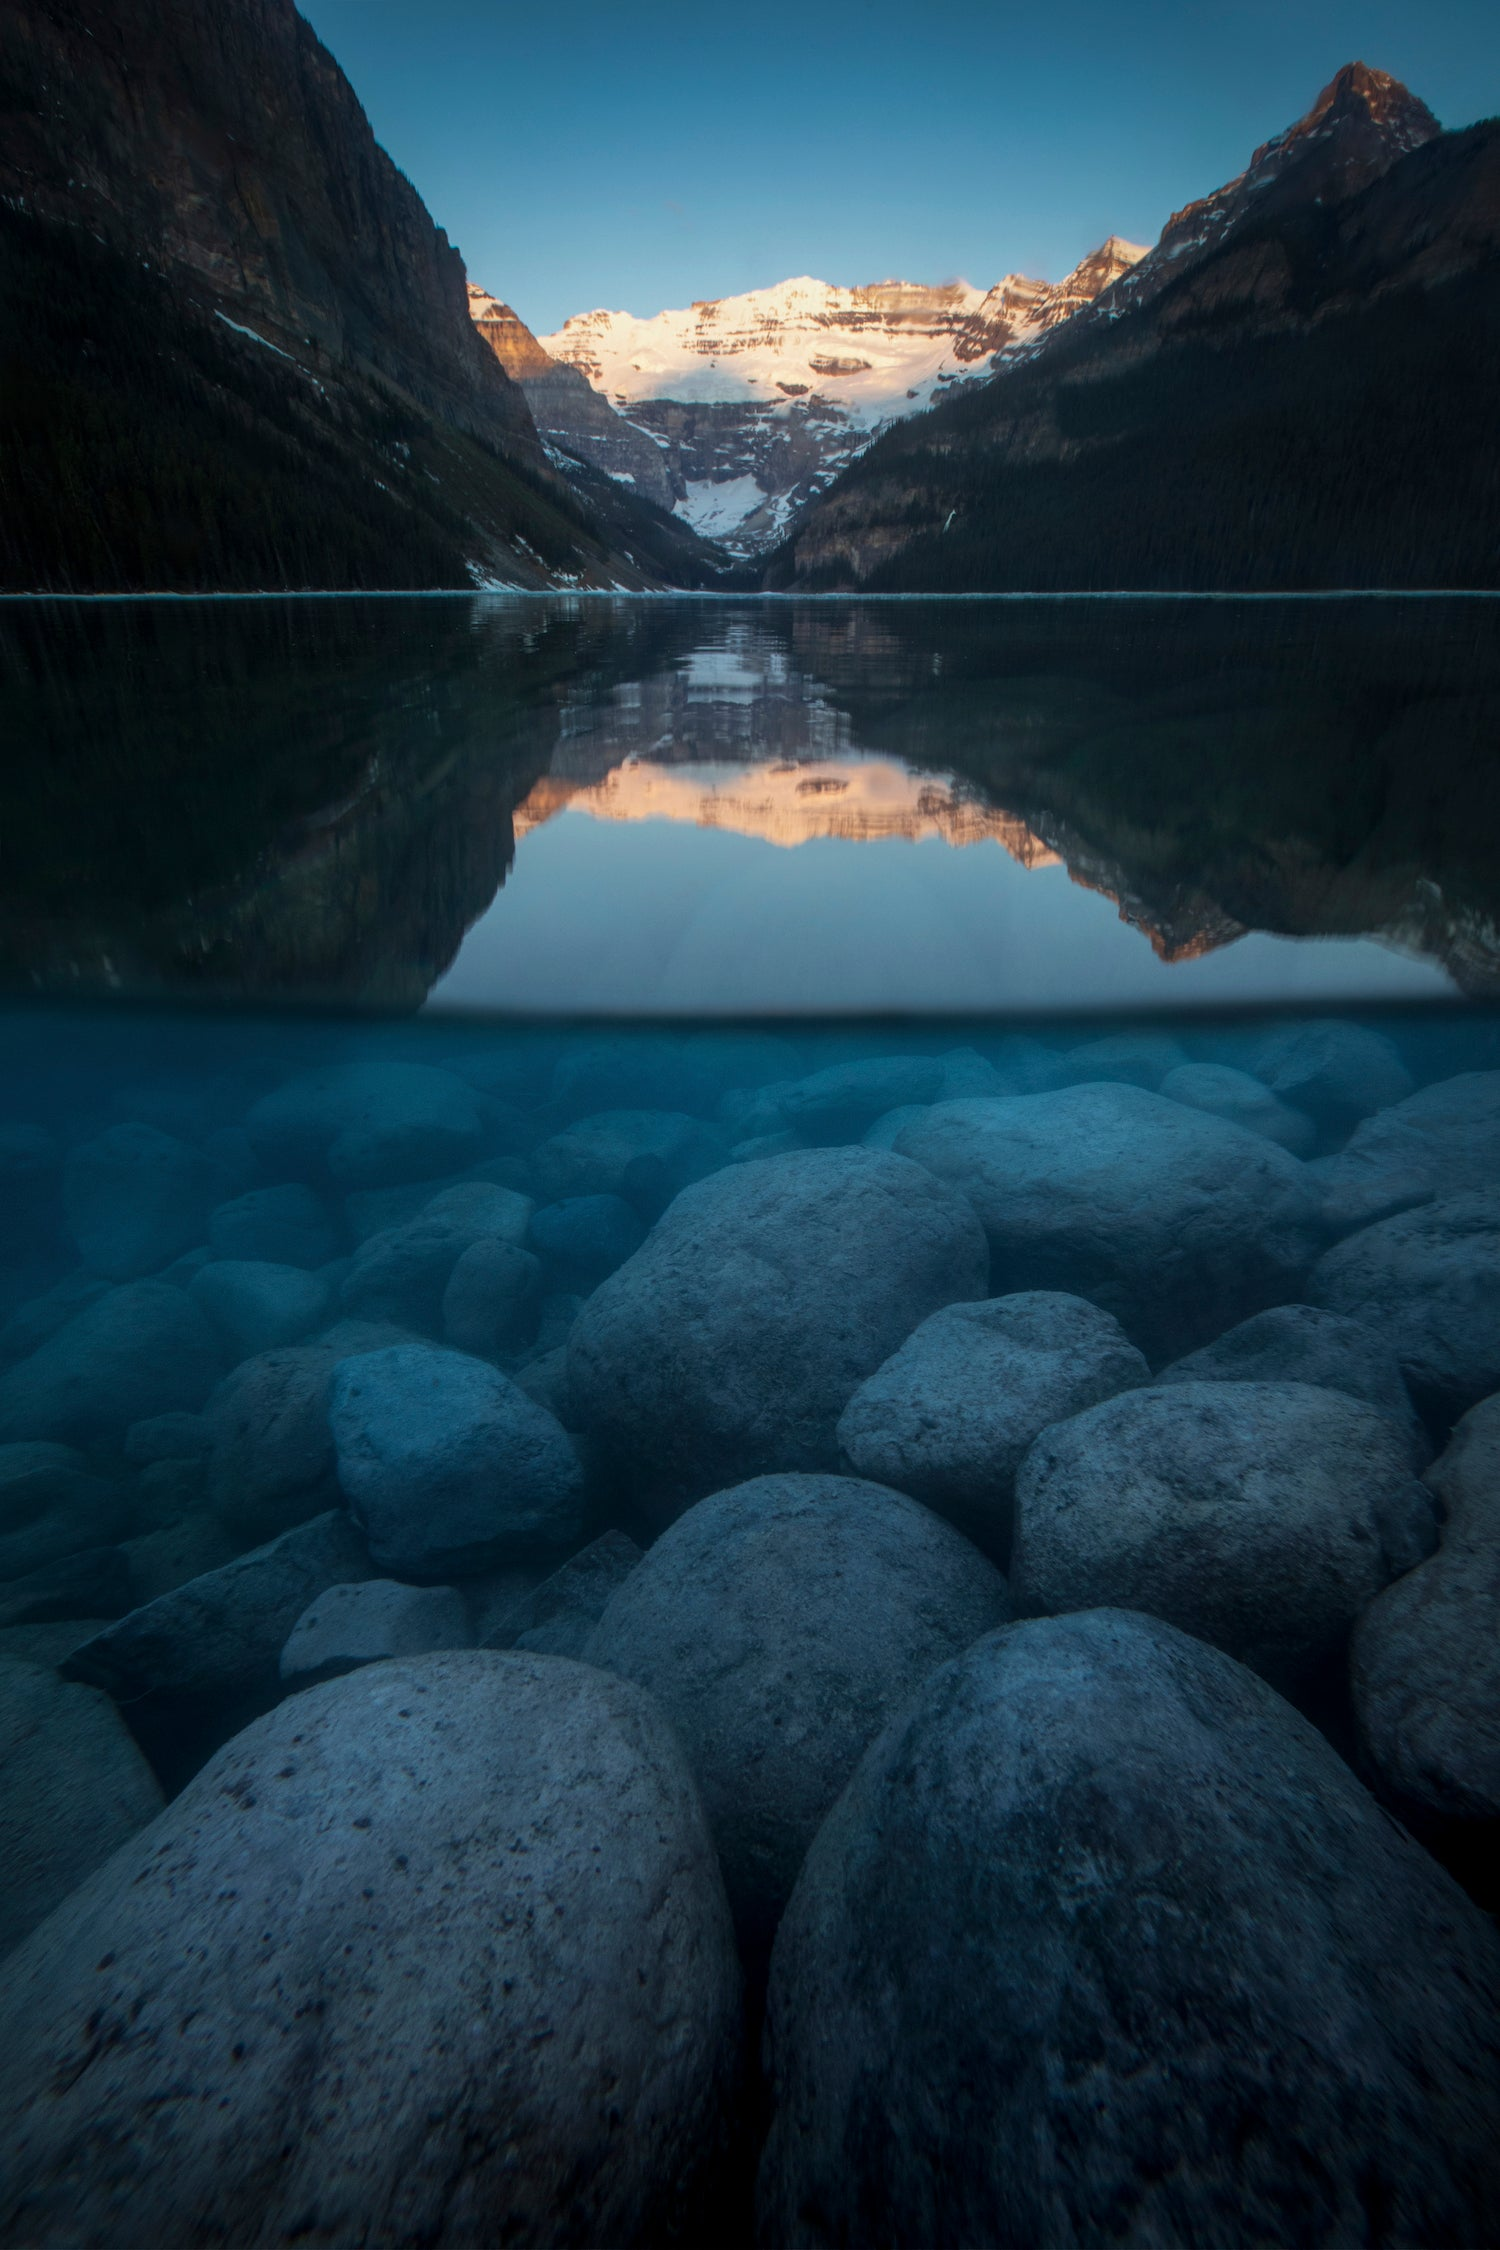 Surfacing at Lake Louise